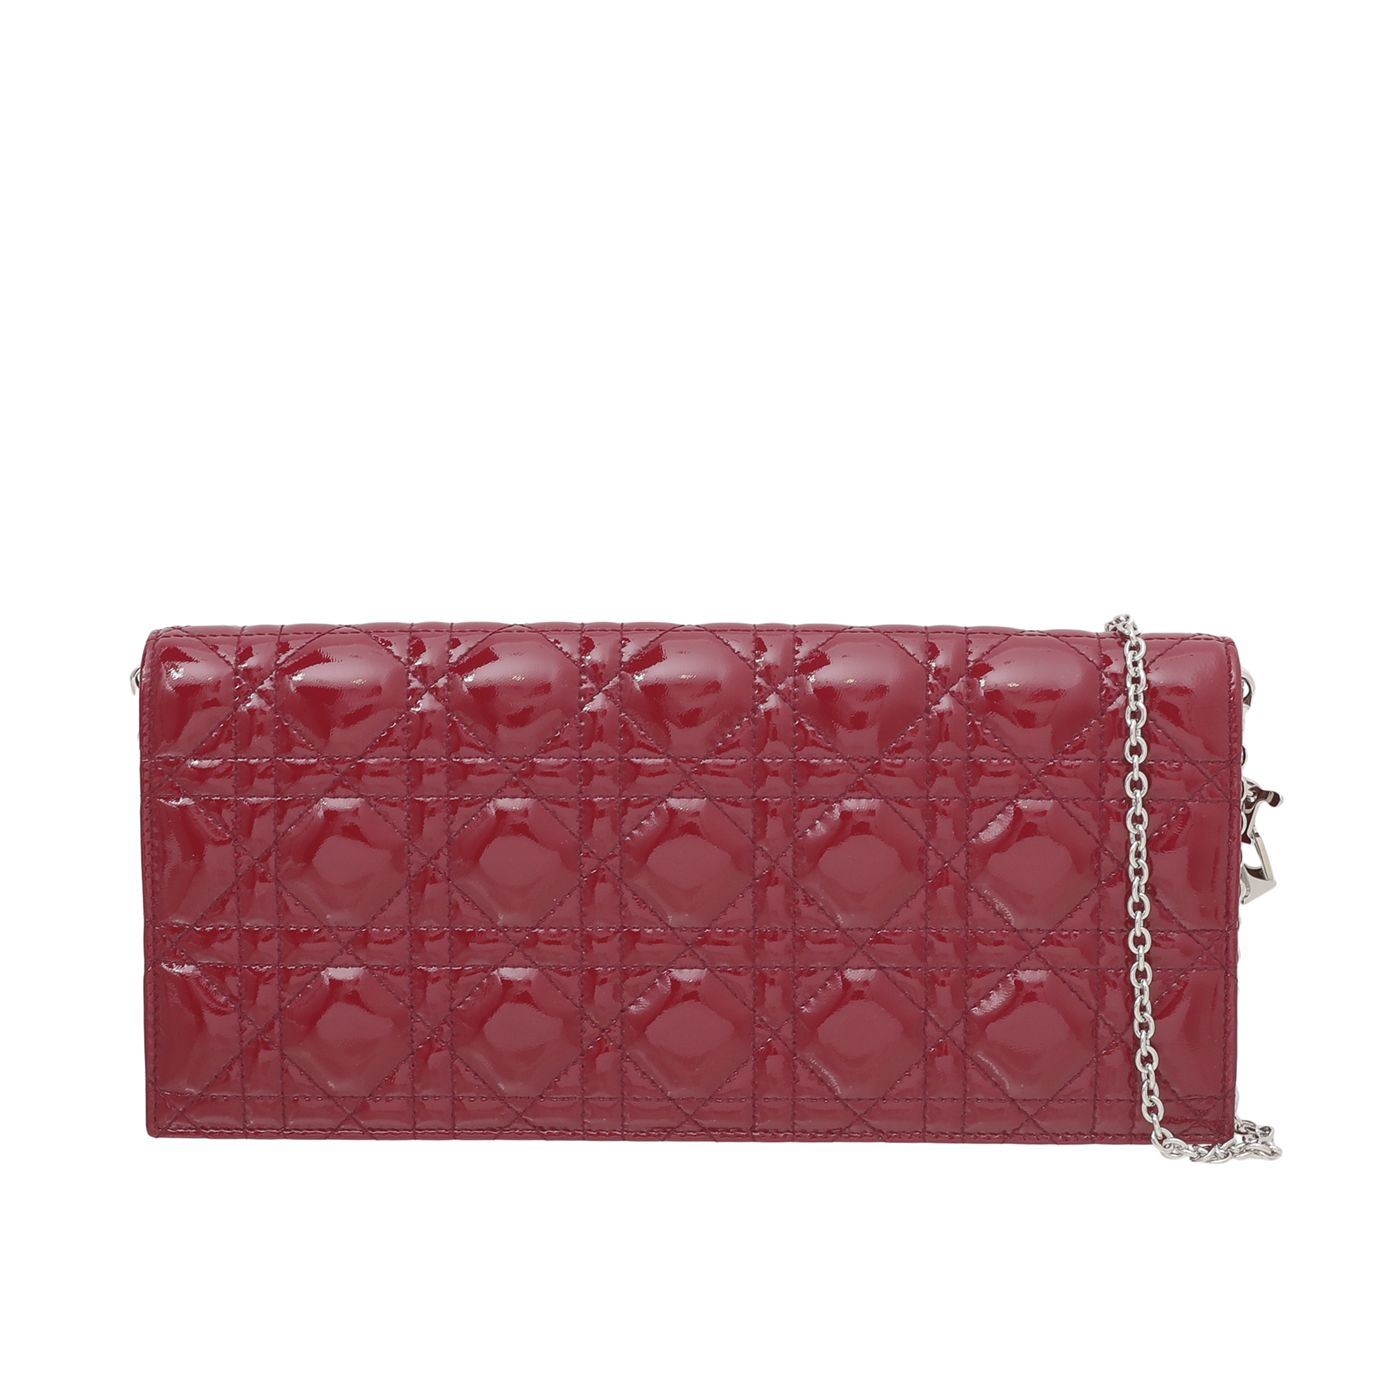 Christian Dior Red Lady Dior Convertible Clutch